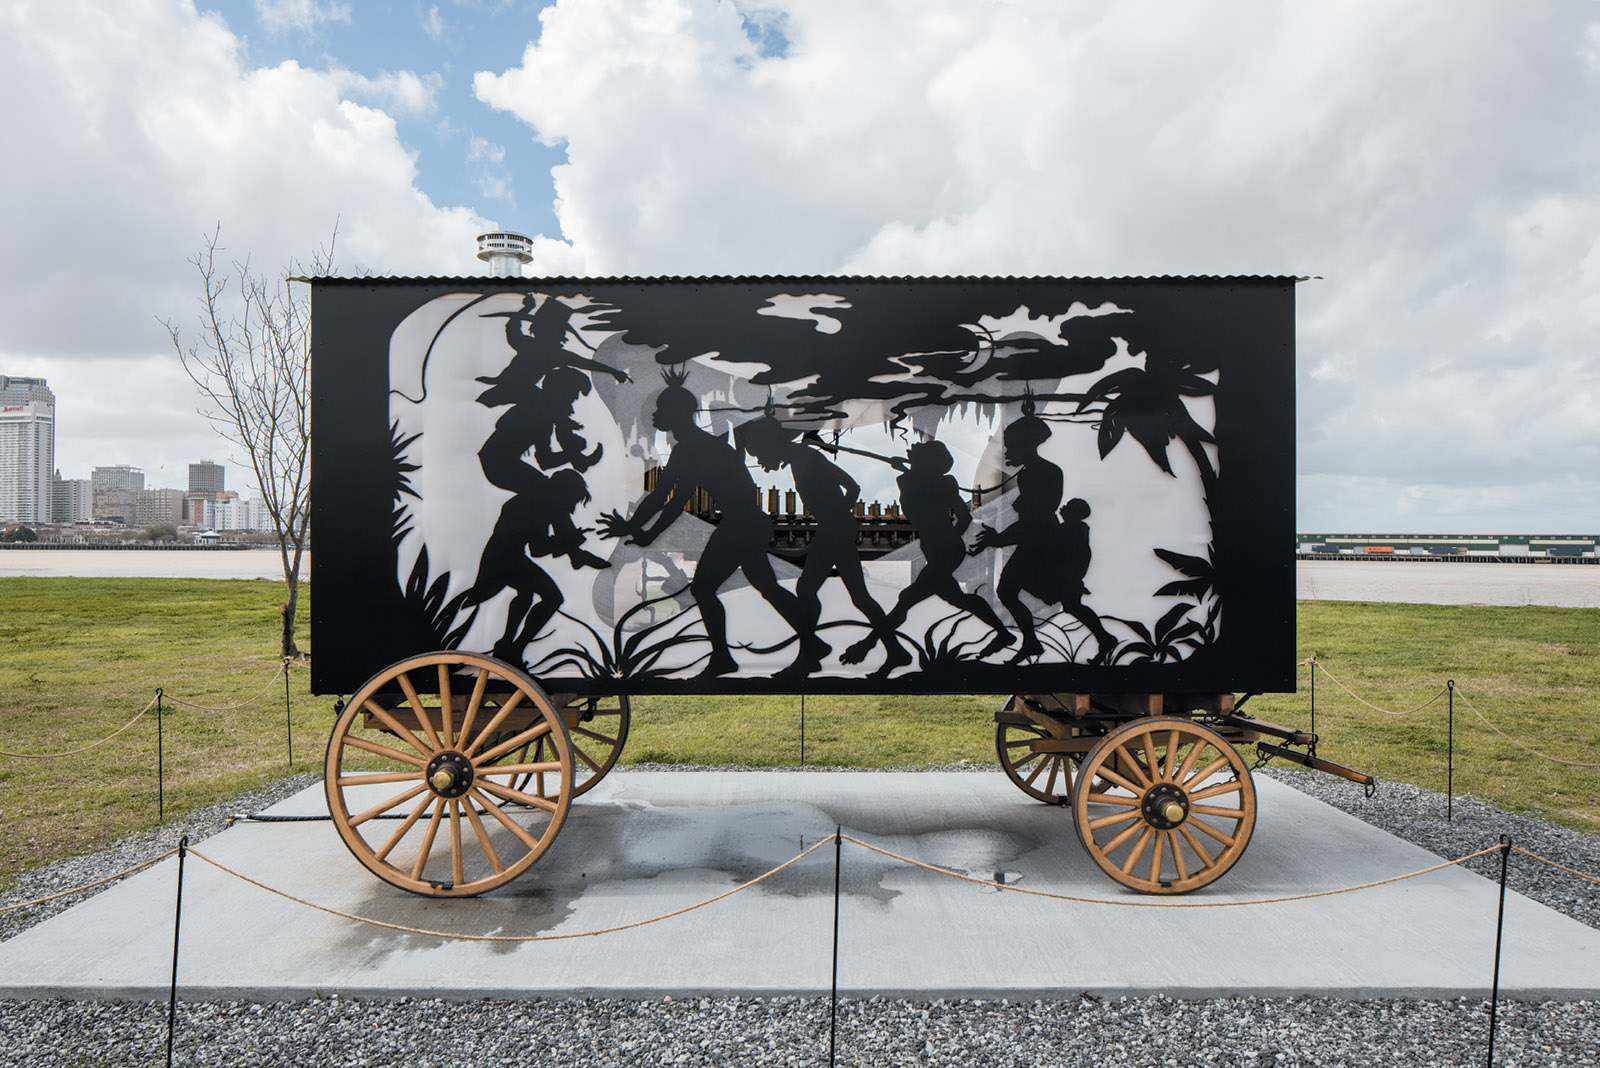 The Katastwóf Karavan, 2017: installation by Kara Walker